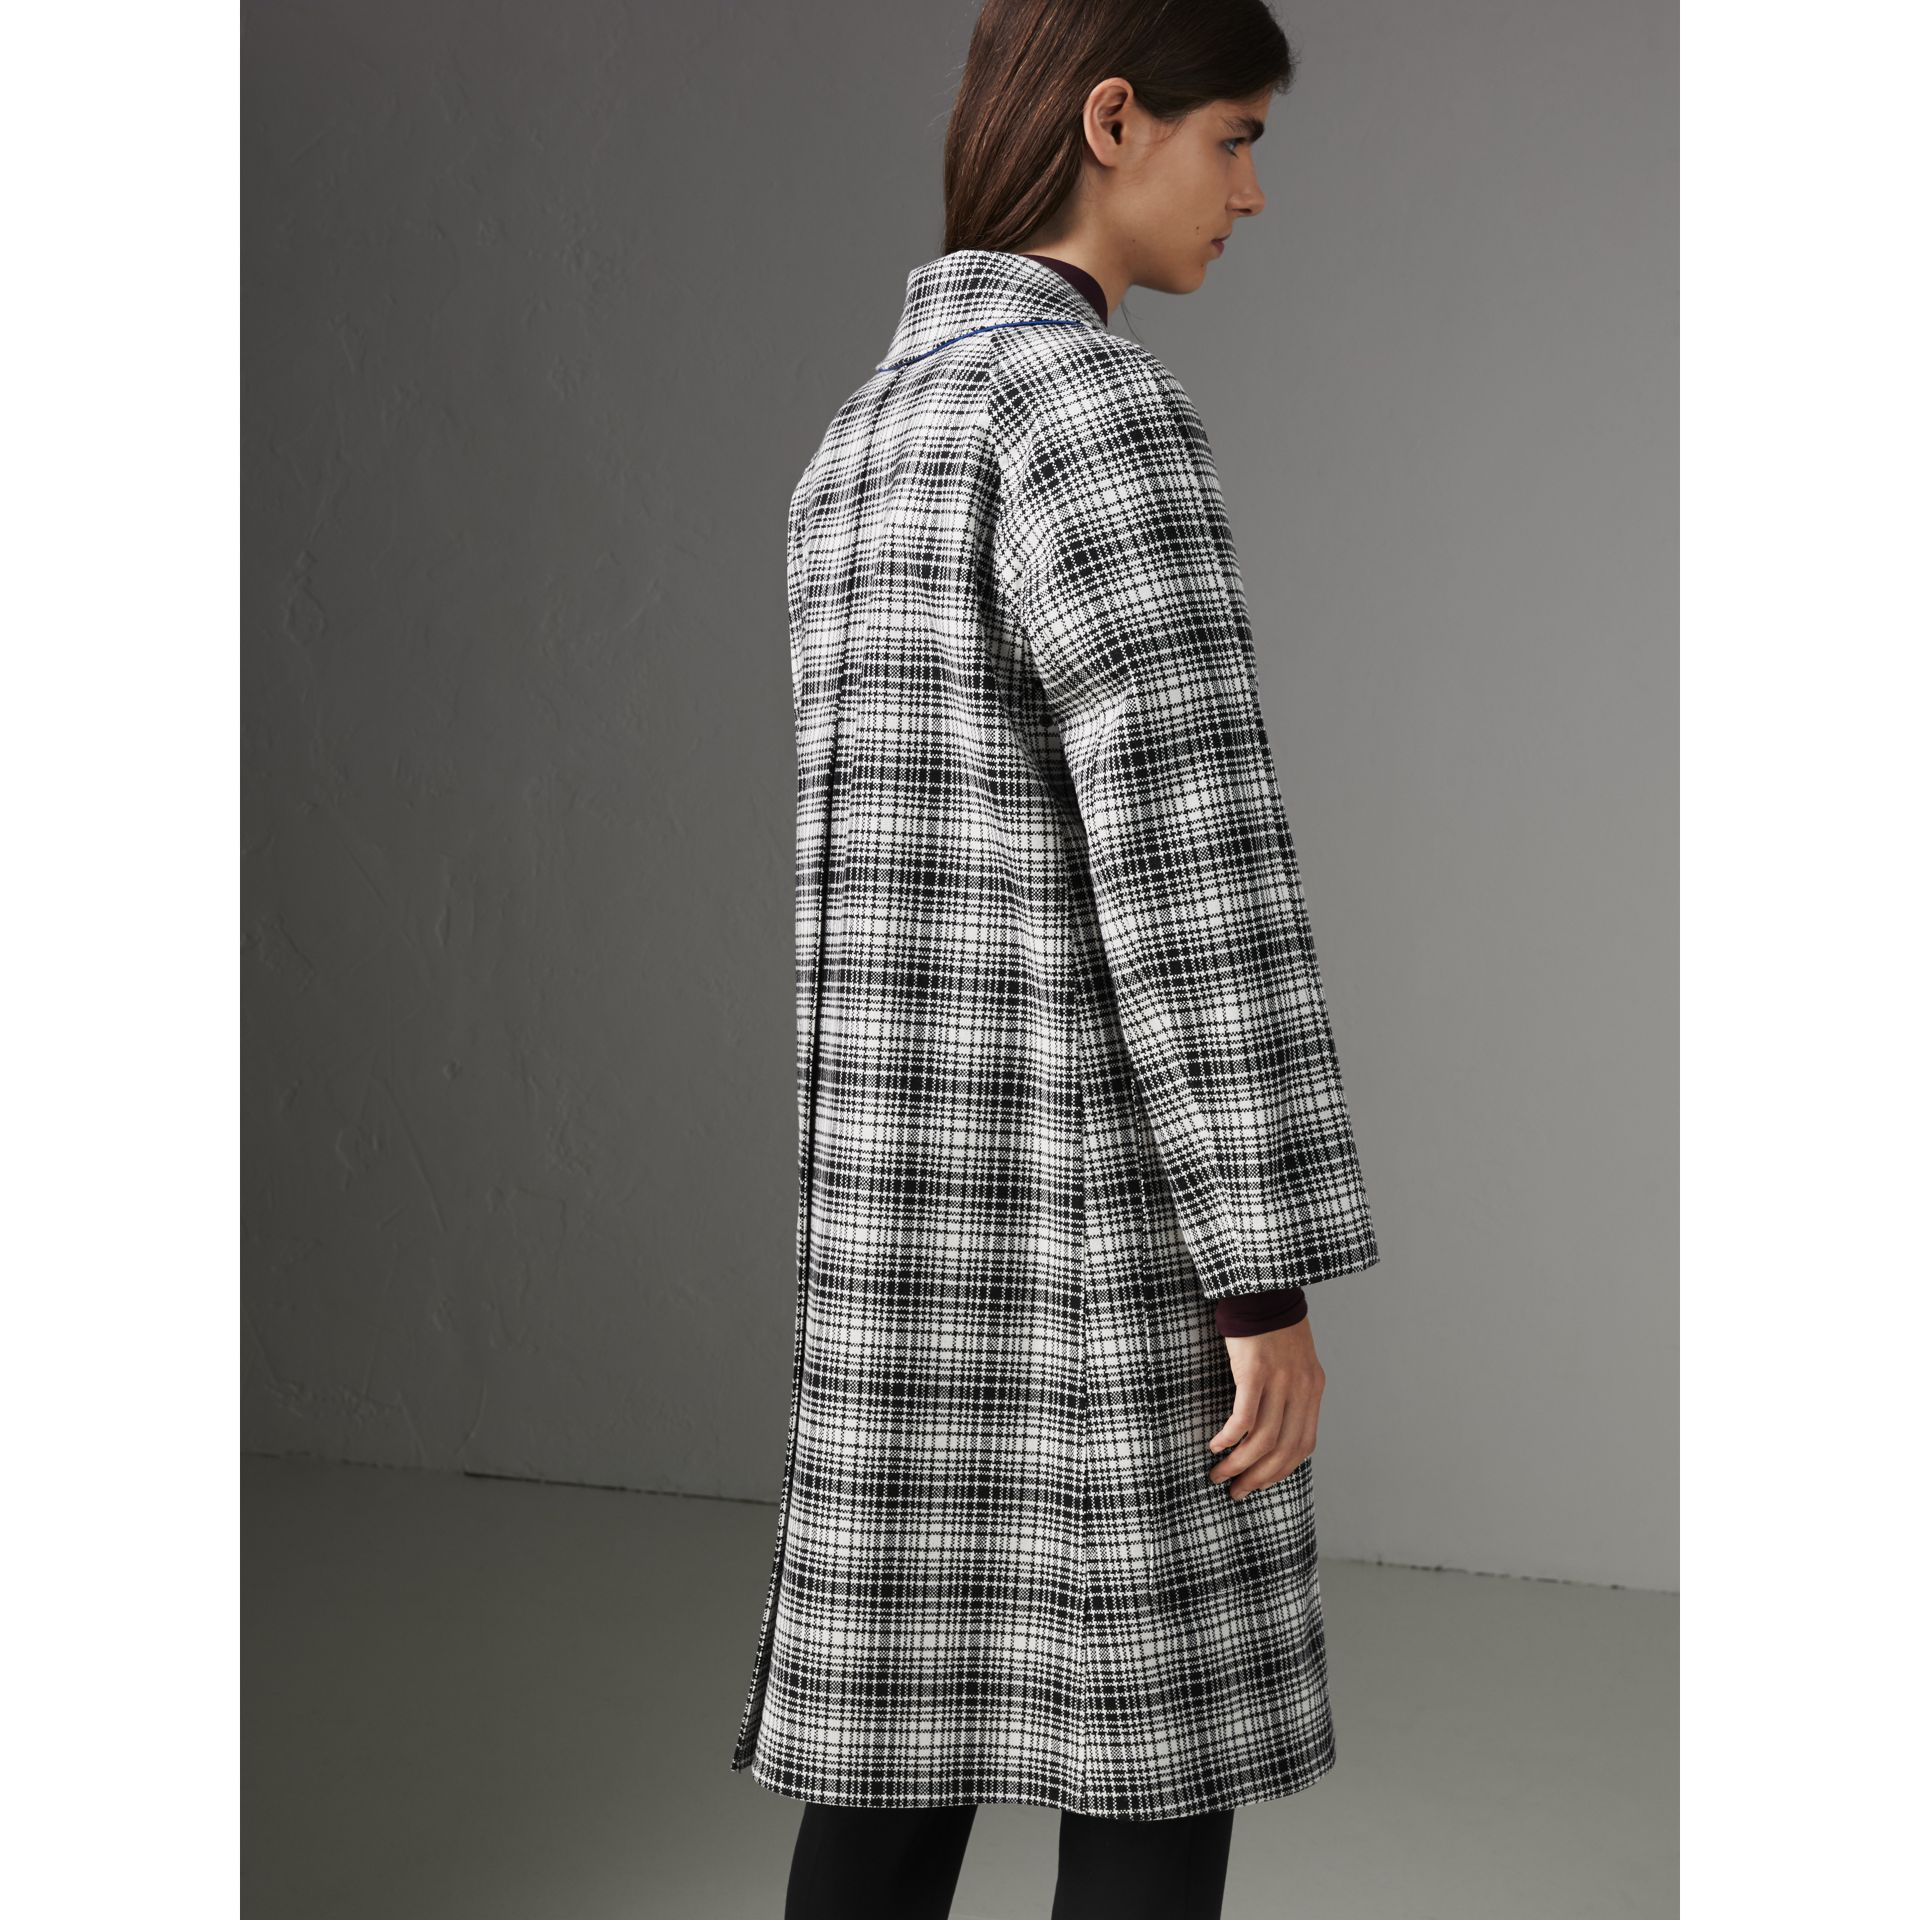 Check Wool Tailored Coat in Black/white - Women | Burberry Australia - gallery image 2